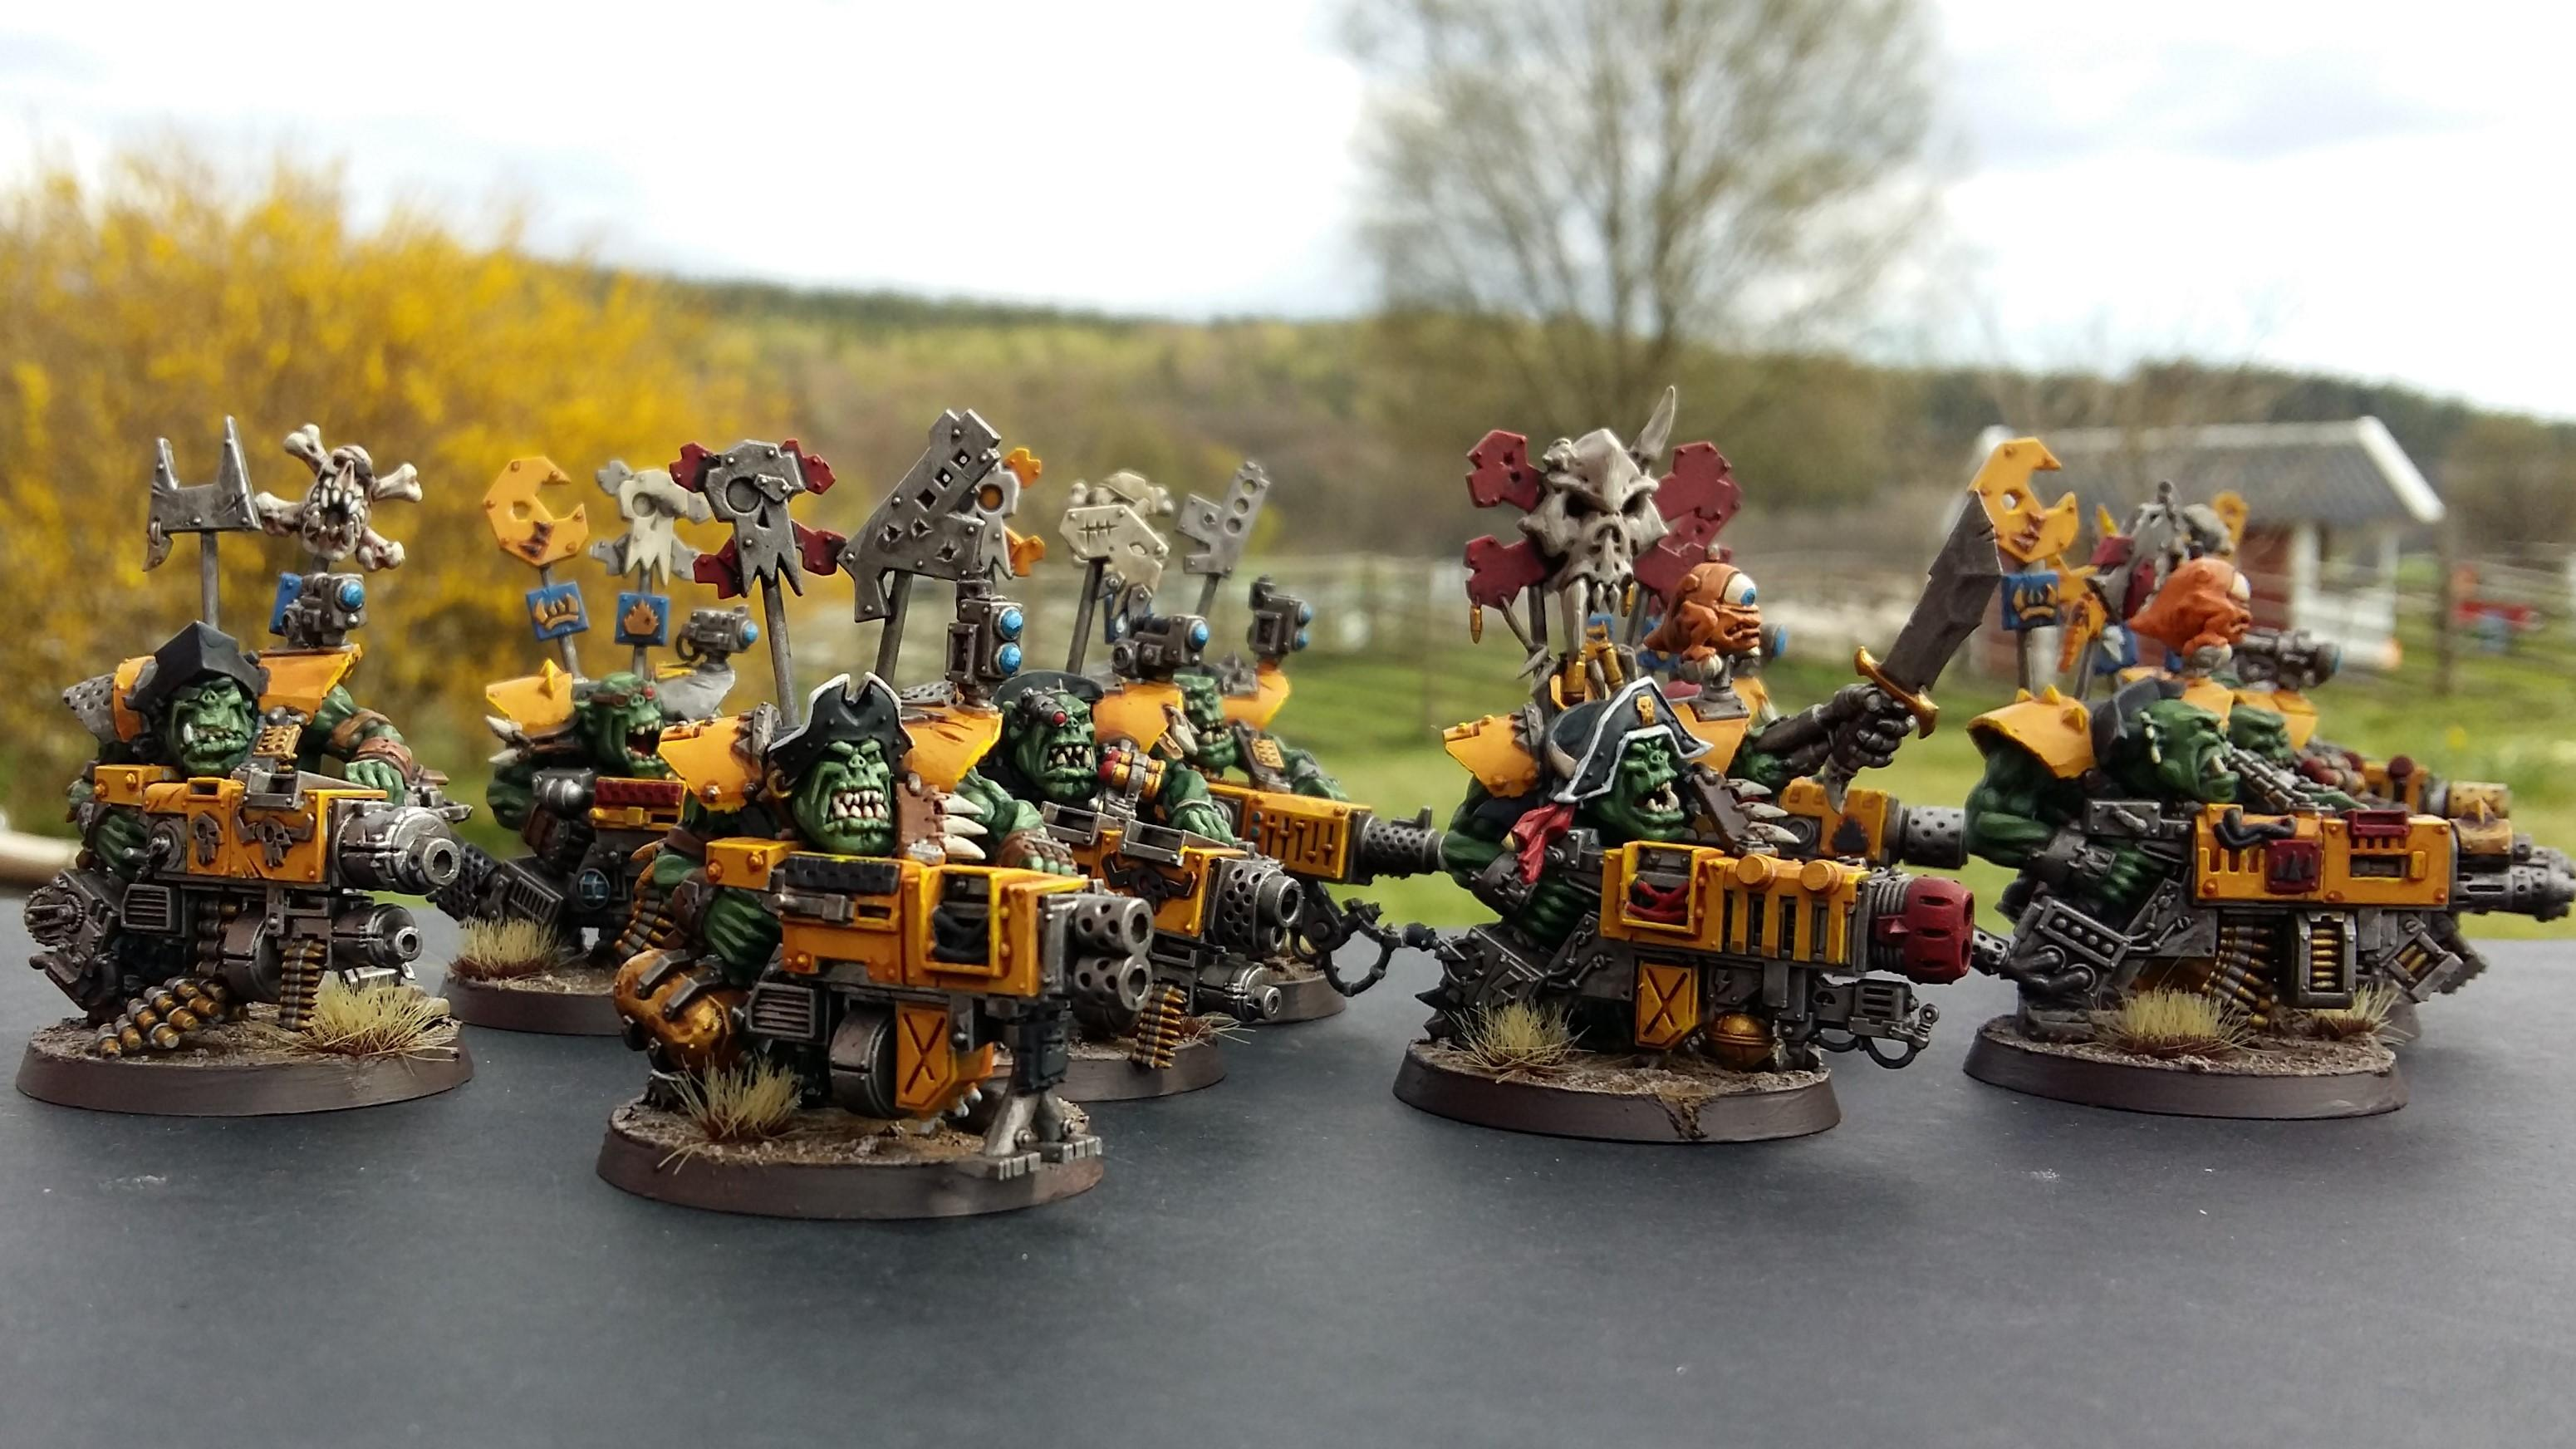 Bad Moons, Flash Git, Kill Team, Orks, Warhammer 40,000